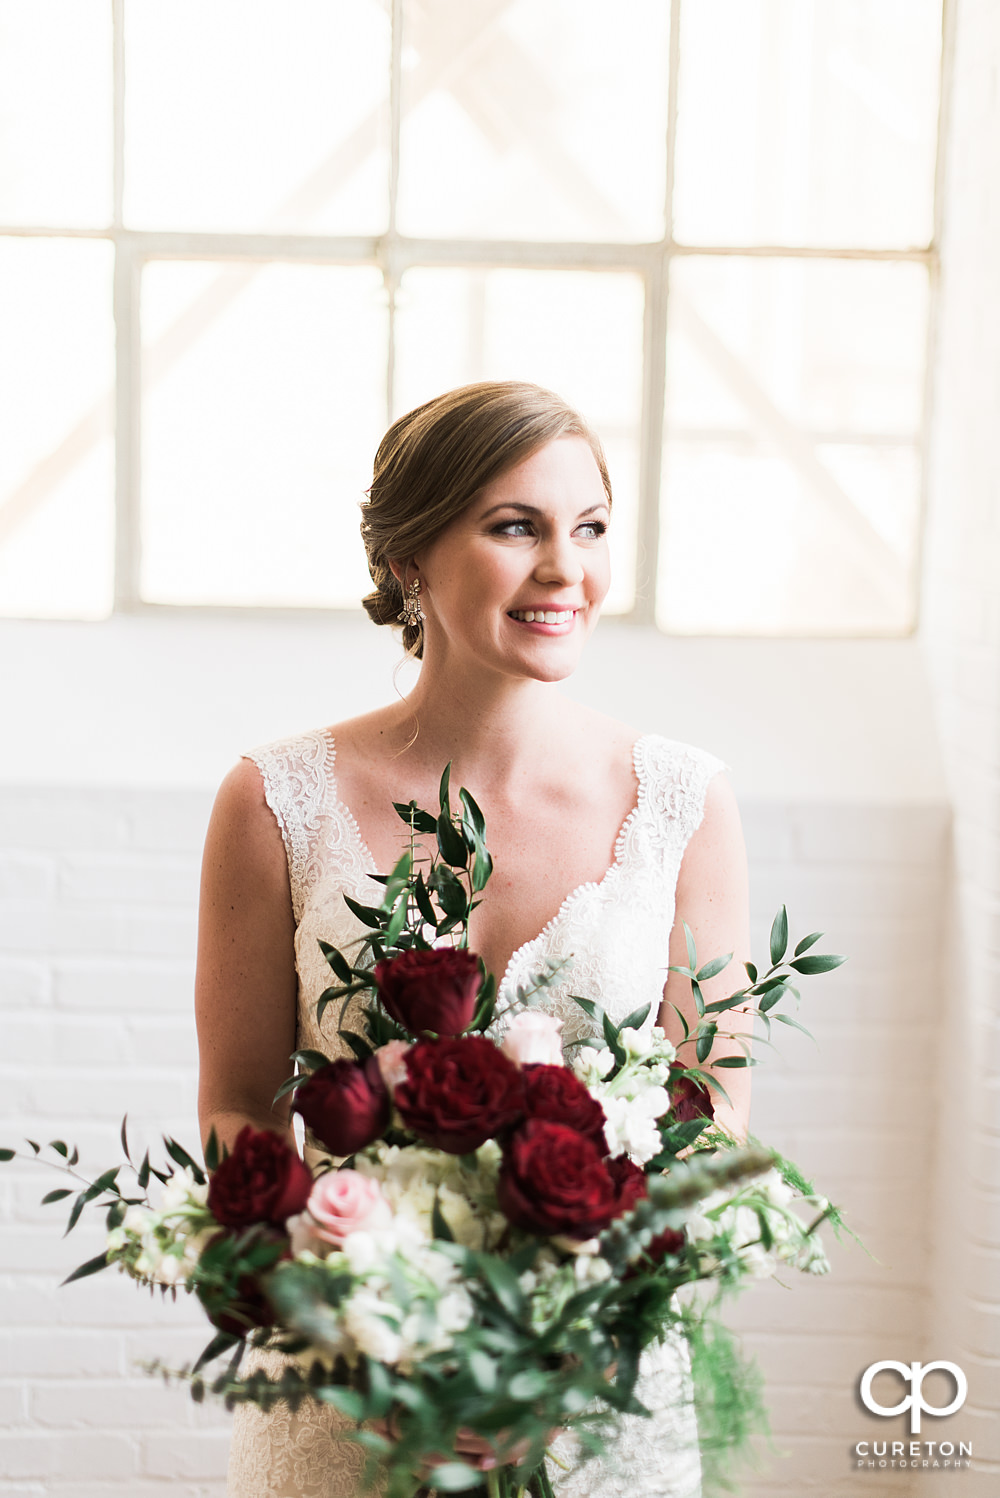 Bride holding a gorgeous bouquet during her bridal session at The Southern Bleachery wedding venue at the Taylor Mill.